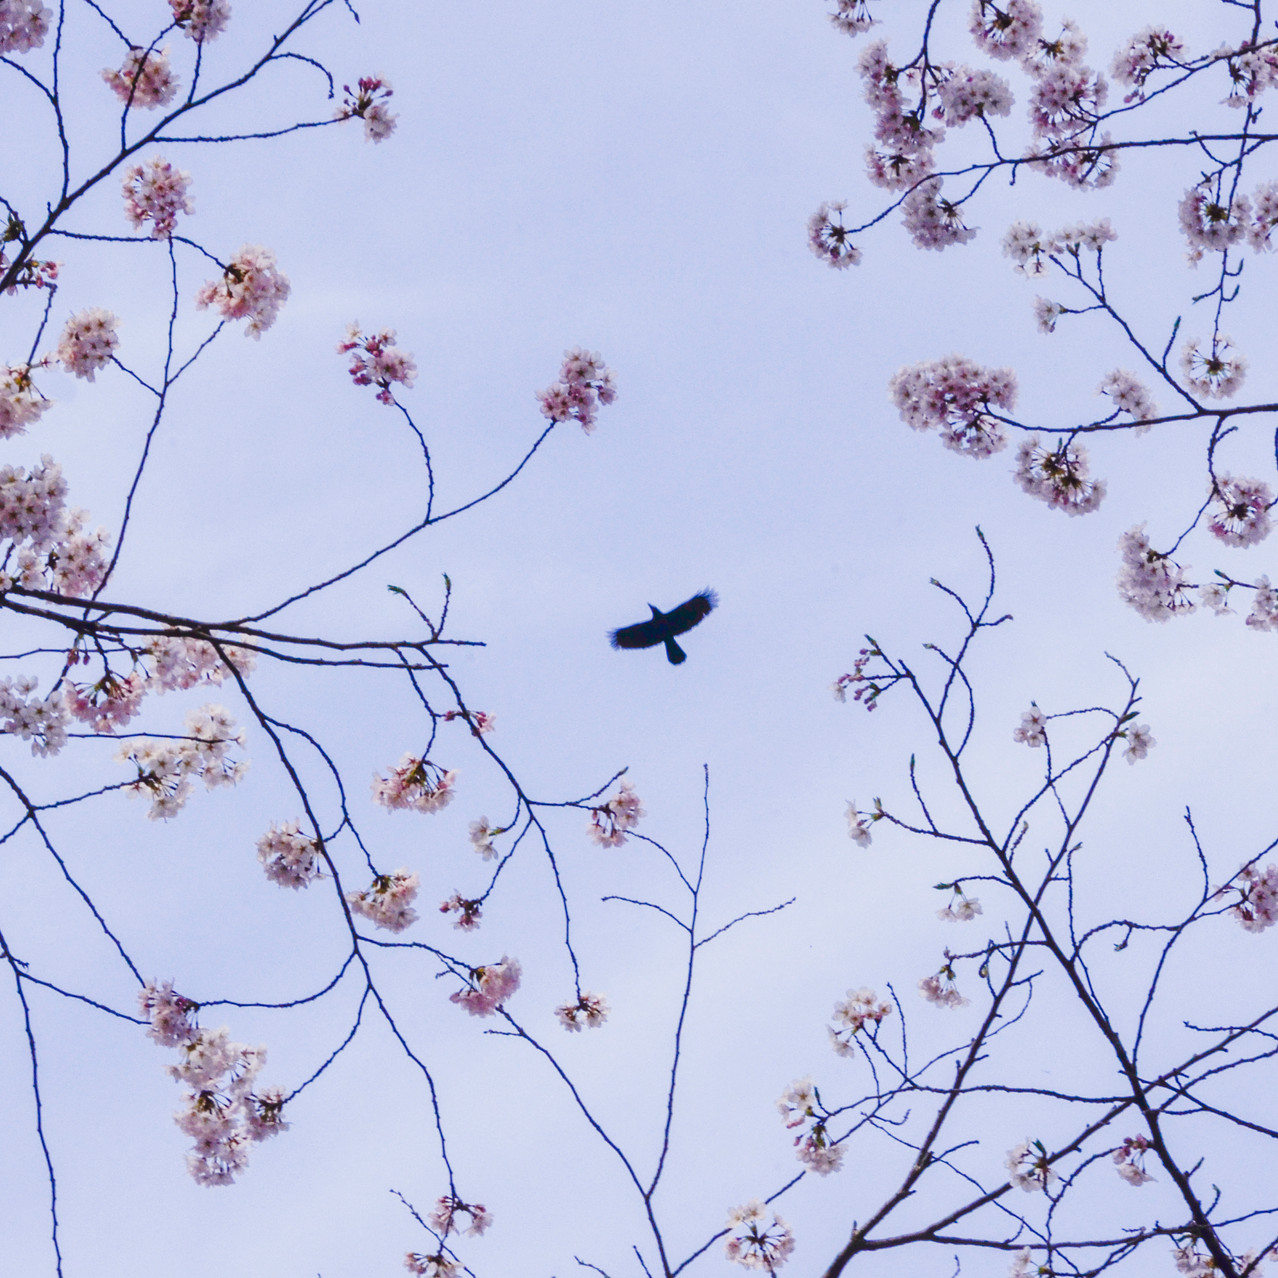 Flying bird and cherry blossom.